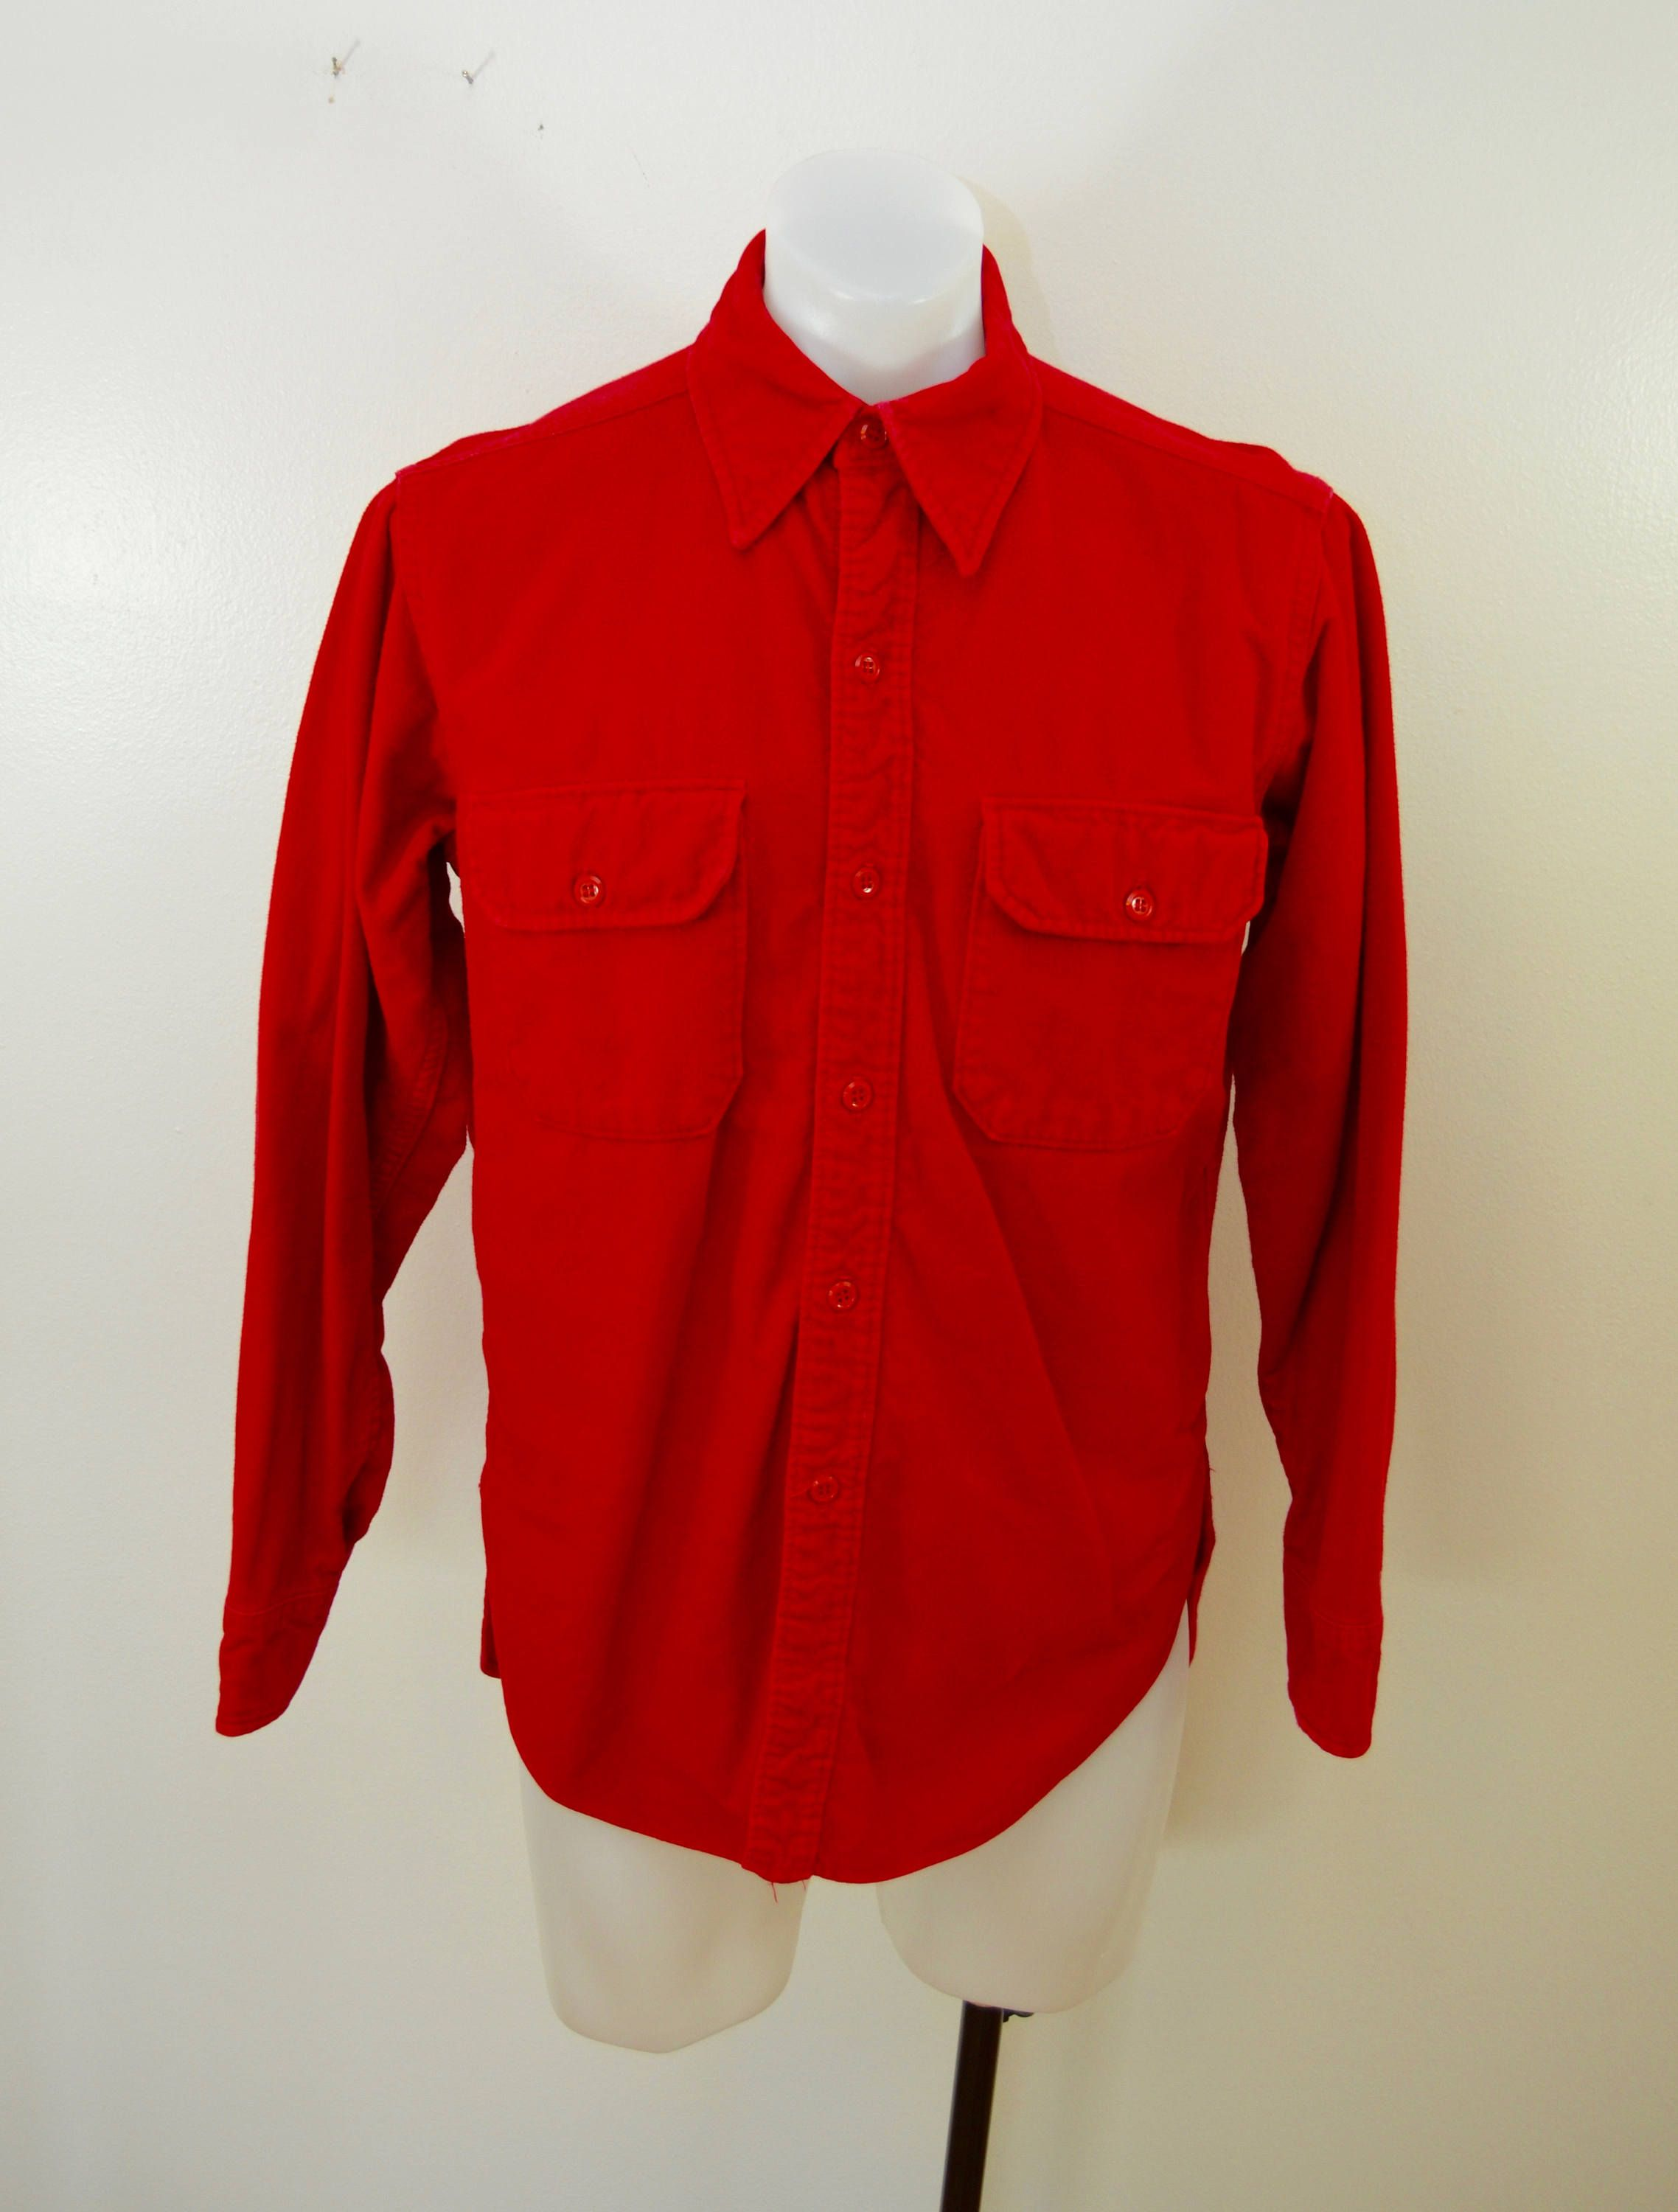 8901e2b3bce Vintage WOOLRICH Red Chamois Shirt long sleeve made in USA size large or xl  by ilovevintagestuff on Etsy